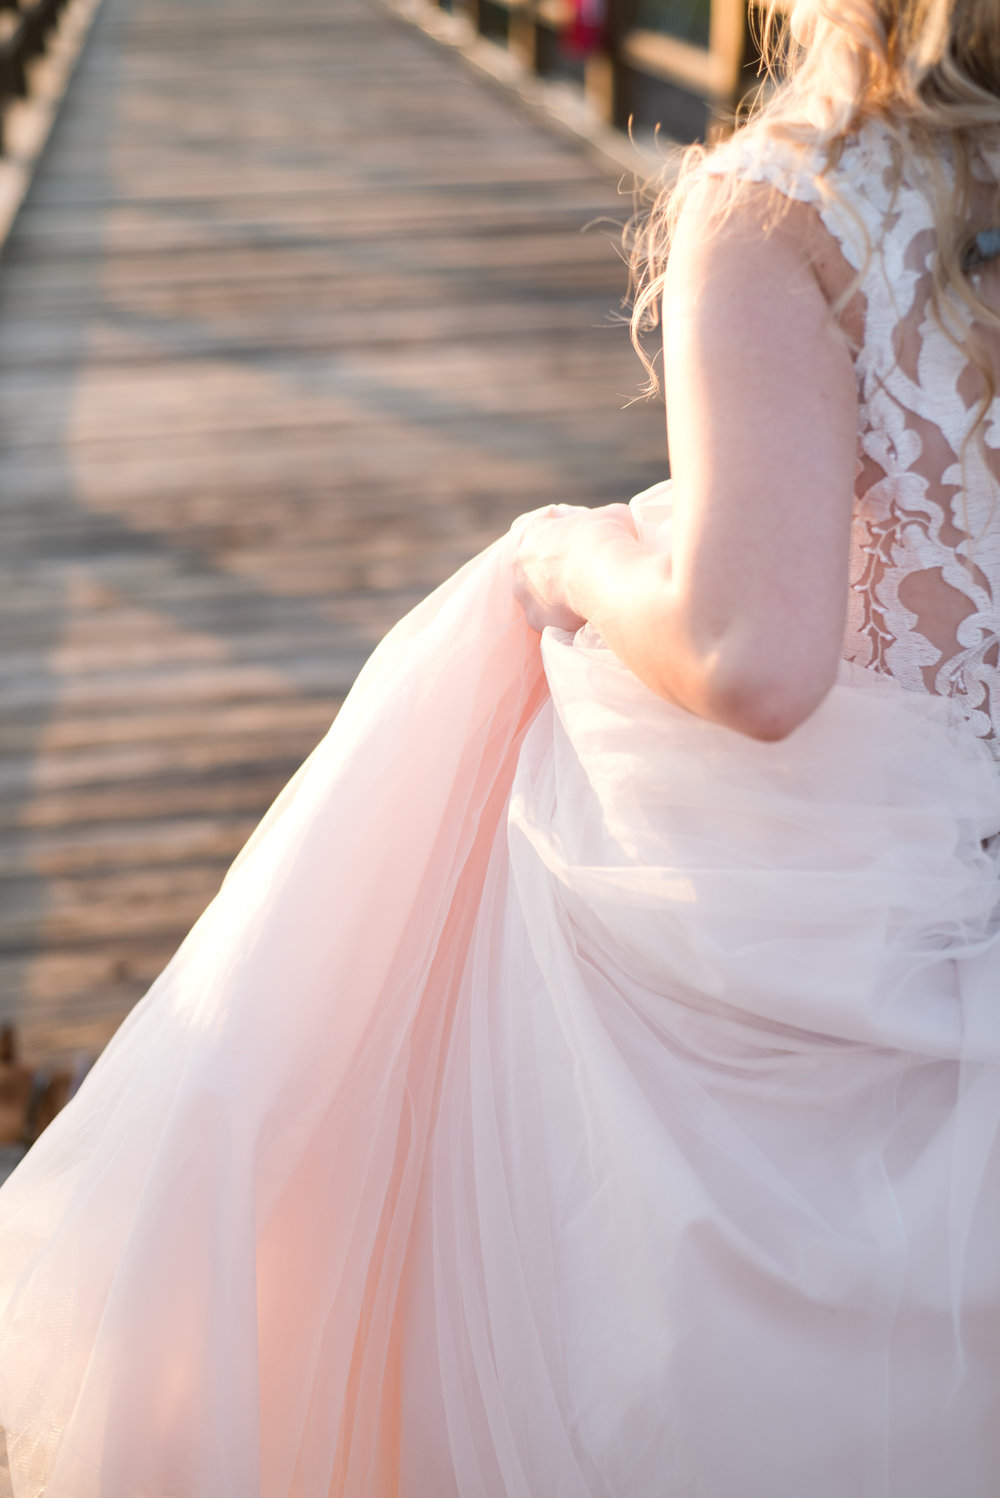 Ivory-and-Beau-bridal-boutique-Delegal-Marina-Samba-to-the-Sea-Photography-carrie-maggie-sottero-rebecca-ingram-bridal-savannah-bridal-boutique-savannah-weddings-marsh-wedding-georgia-wedding-savannah-wedding-sunset-wedding-savannah-wedding-gowns-4.jpg